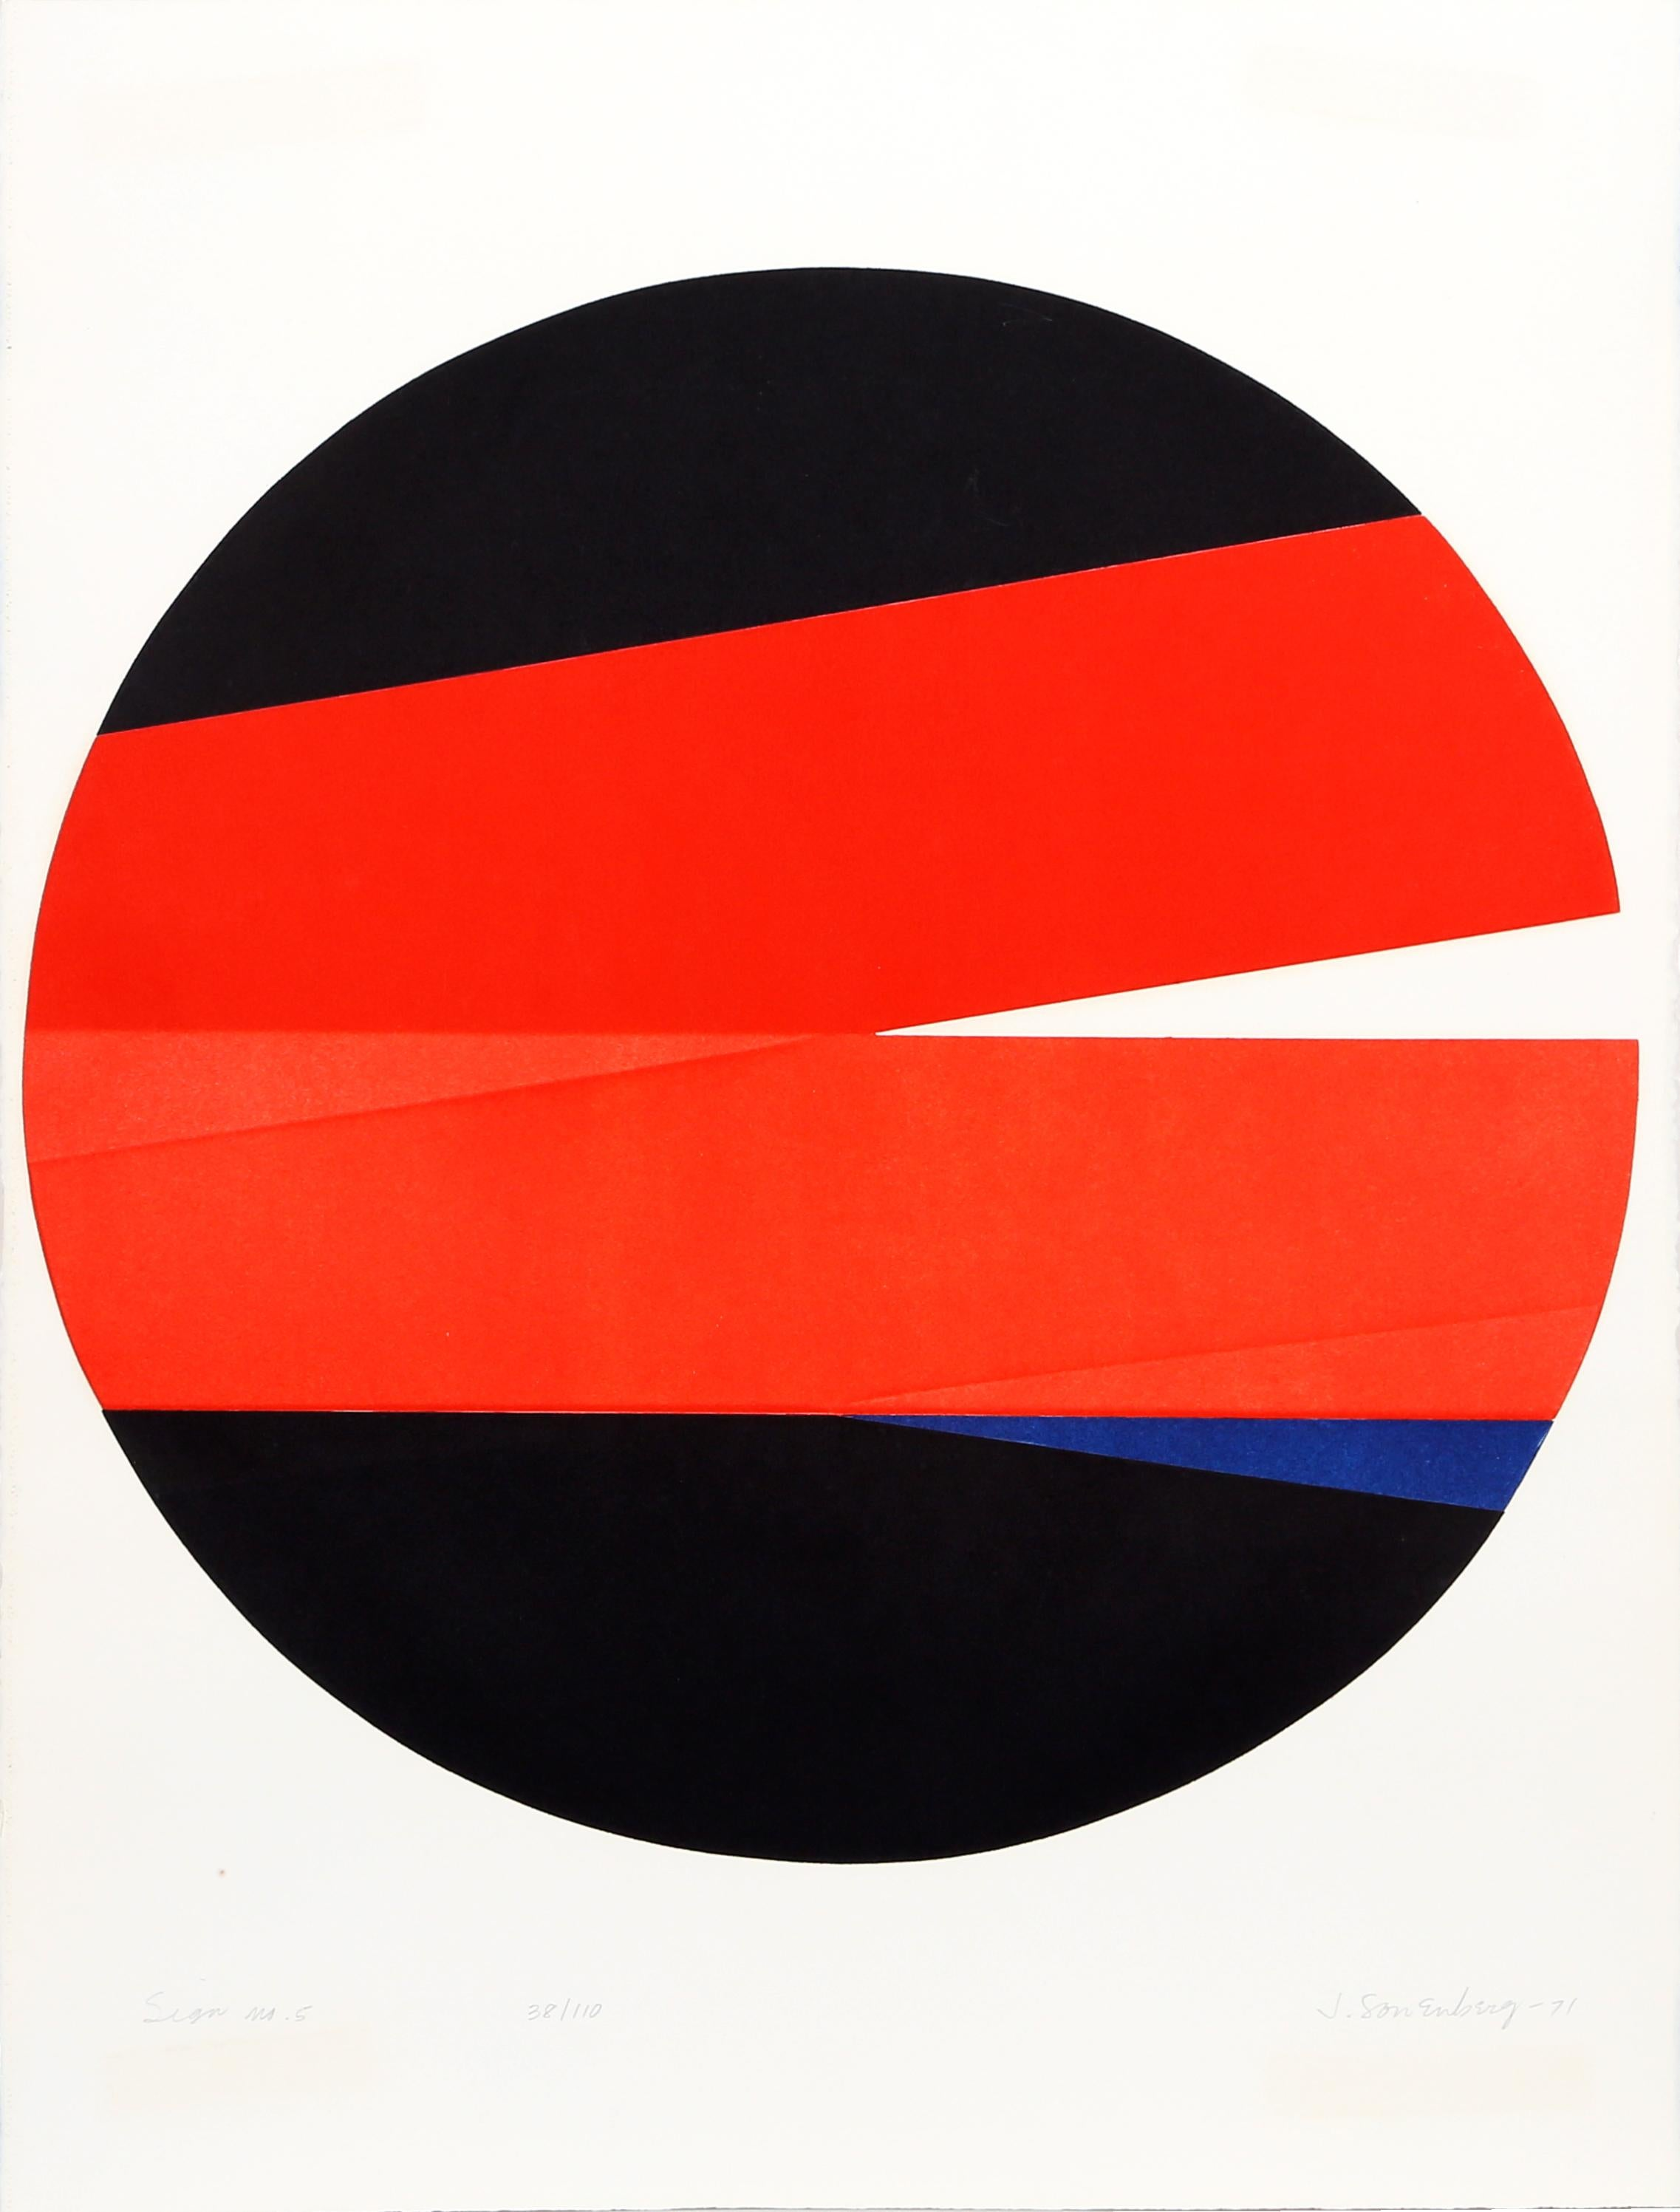 Sign No. 5, Geometric Abstract Etching by Jack Sonenberg